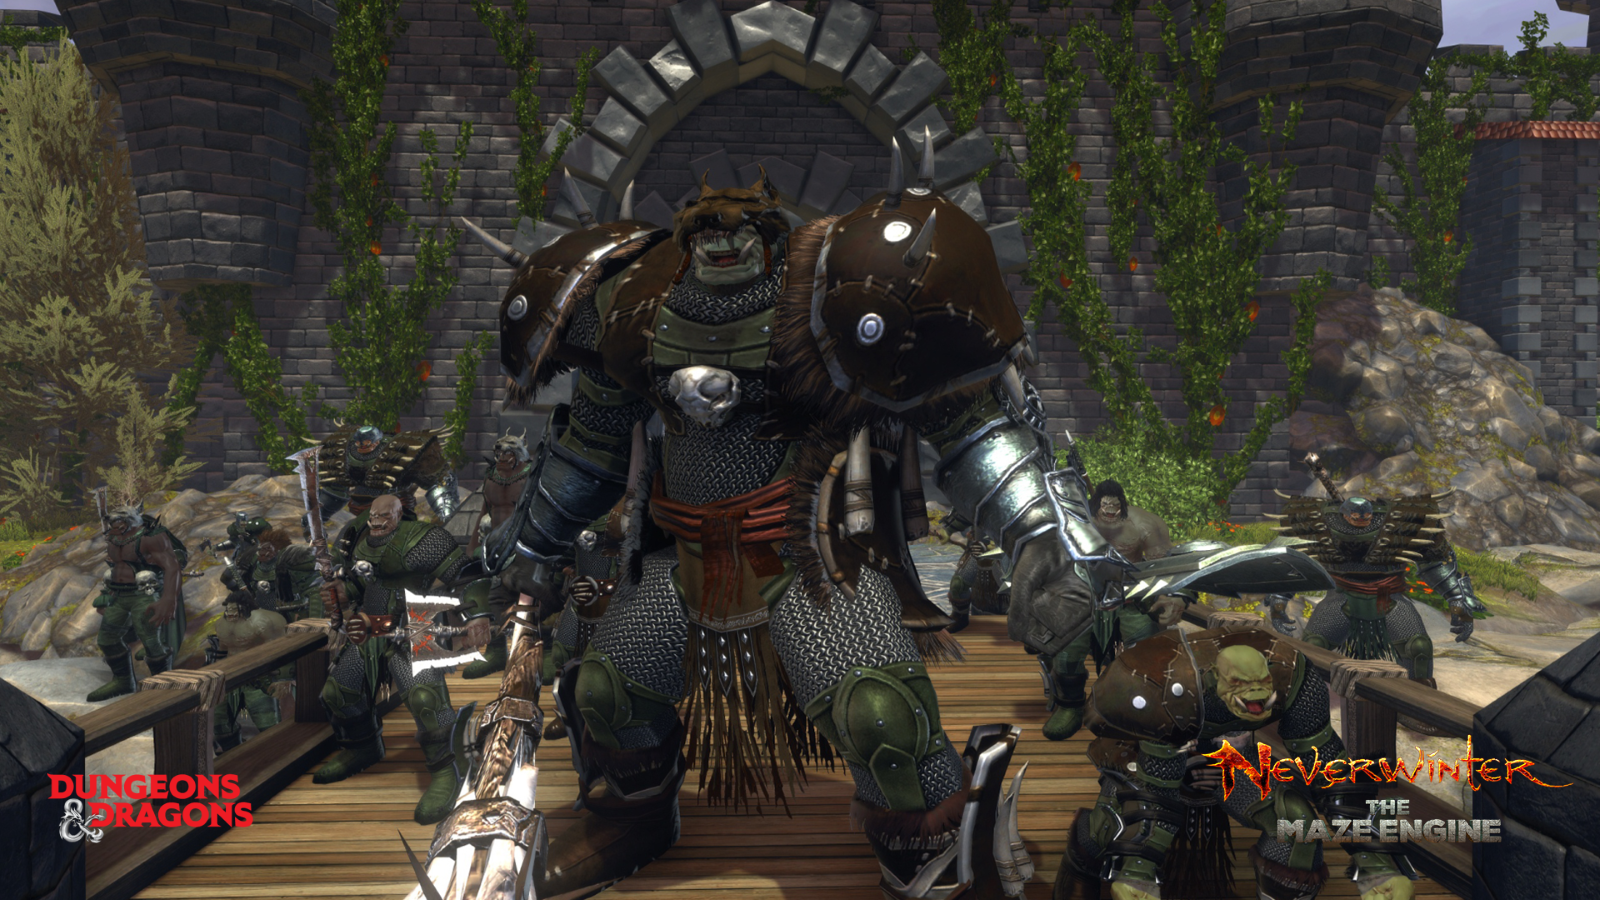 Neverwinter The Maze Engine: Guild Alliances Launches